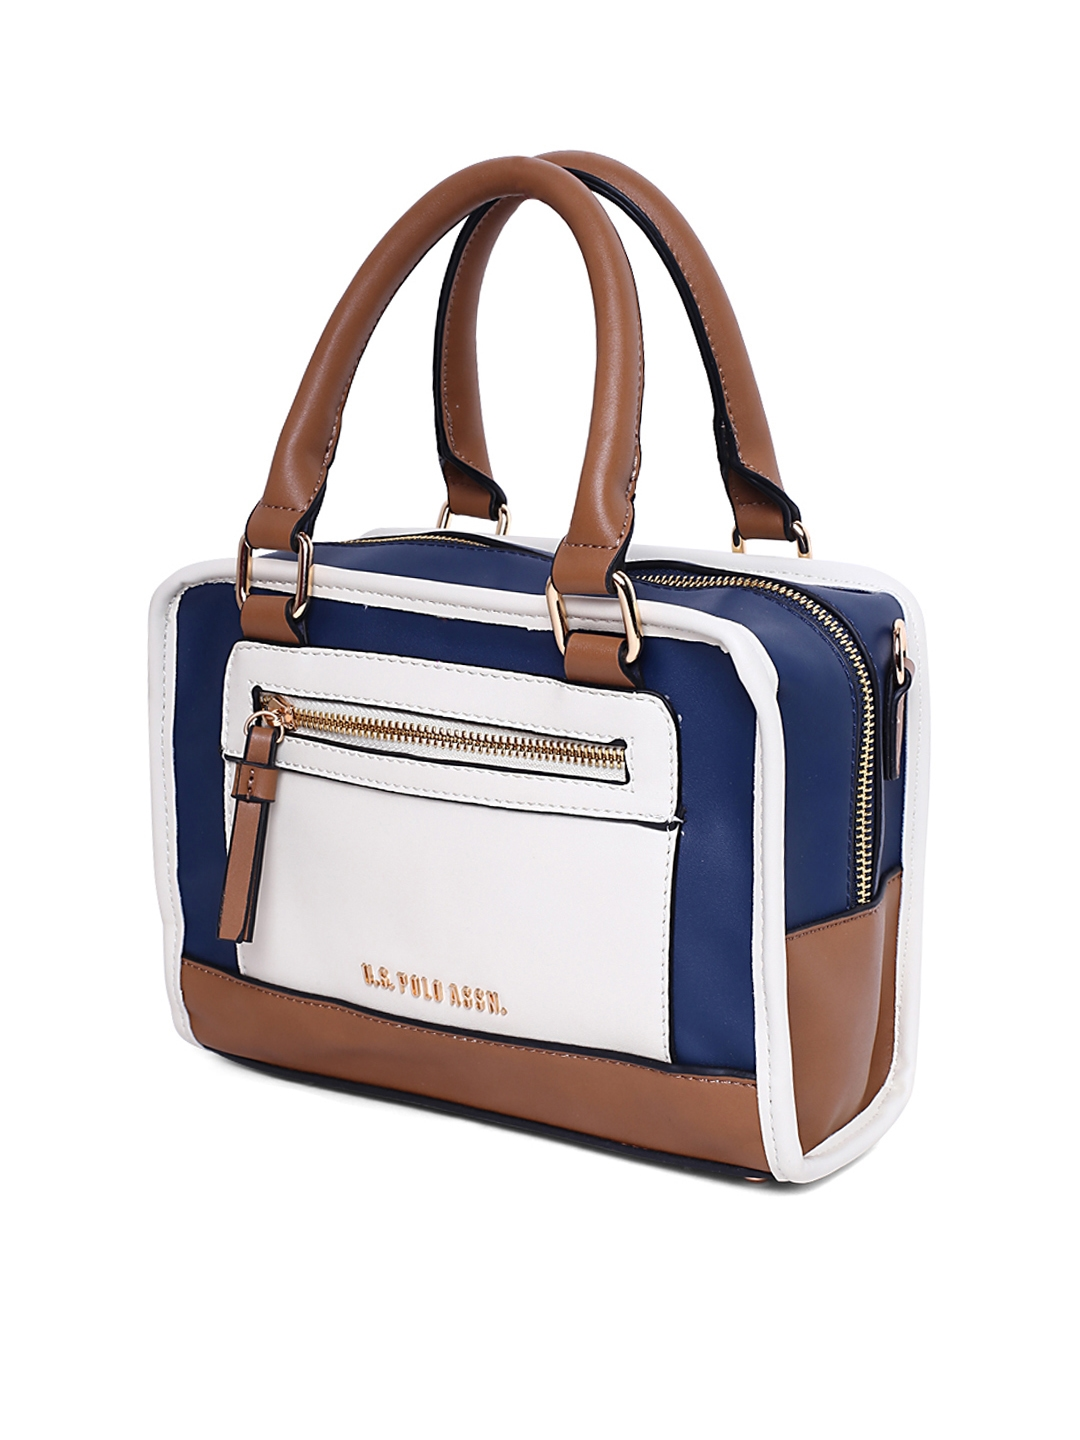 Buy U.S. Polo Assn. Women Off White   Blue Colourblocked Handheld ... 17f72ec37c86a